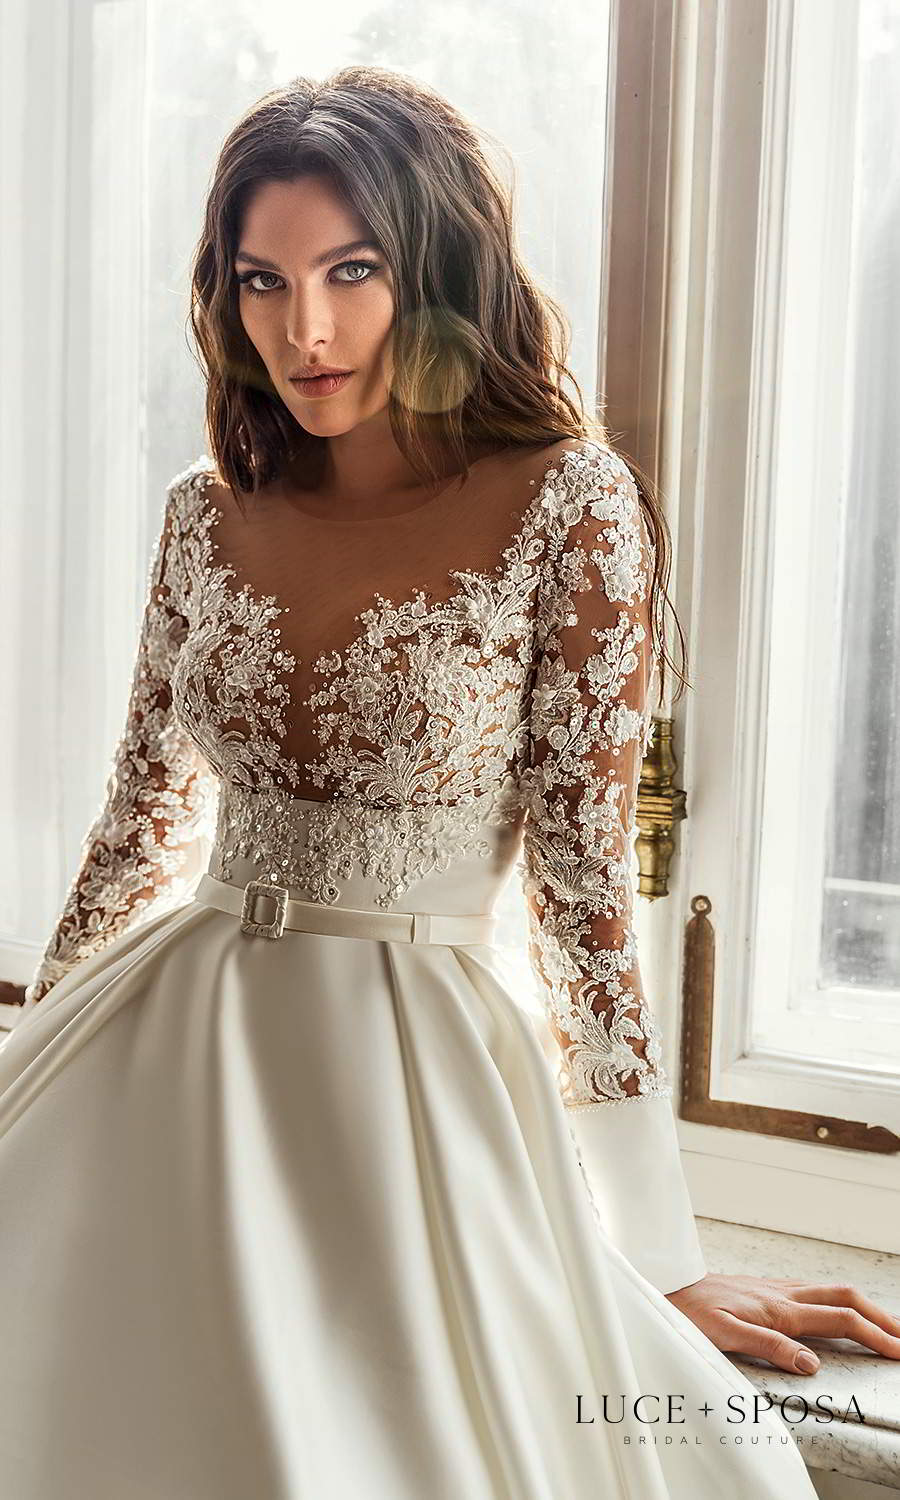 luce sposa 2021 shades of couture bridal long sleeves off shoulder v neckline embellished bodice clean skirt a line ball gown wedding dress chapel train (londyn) zv